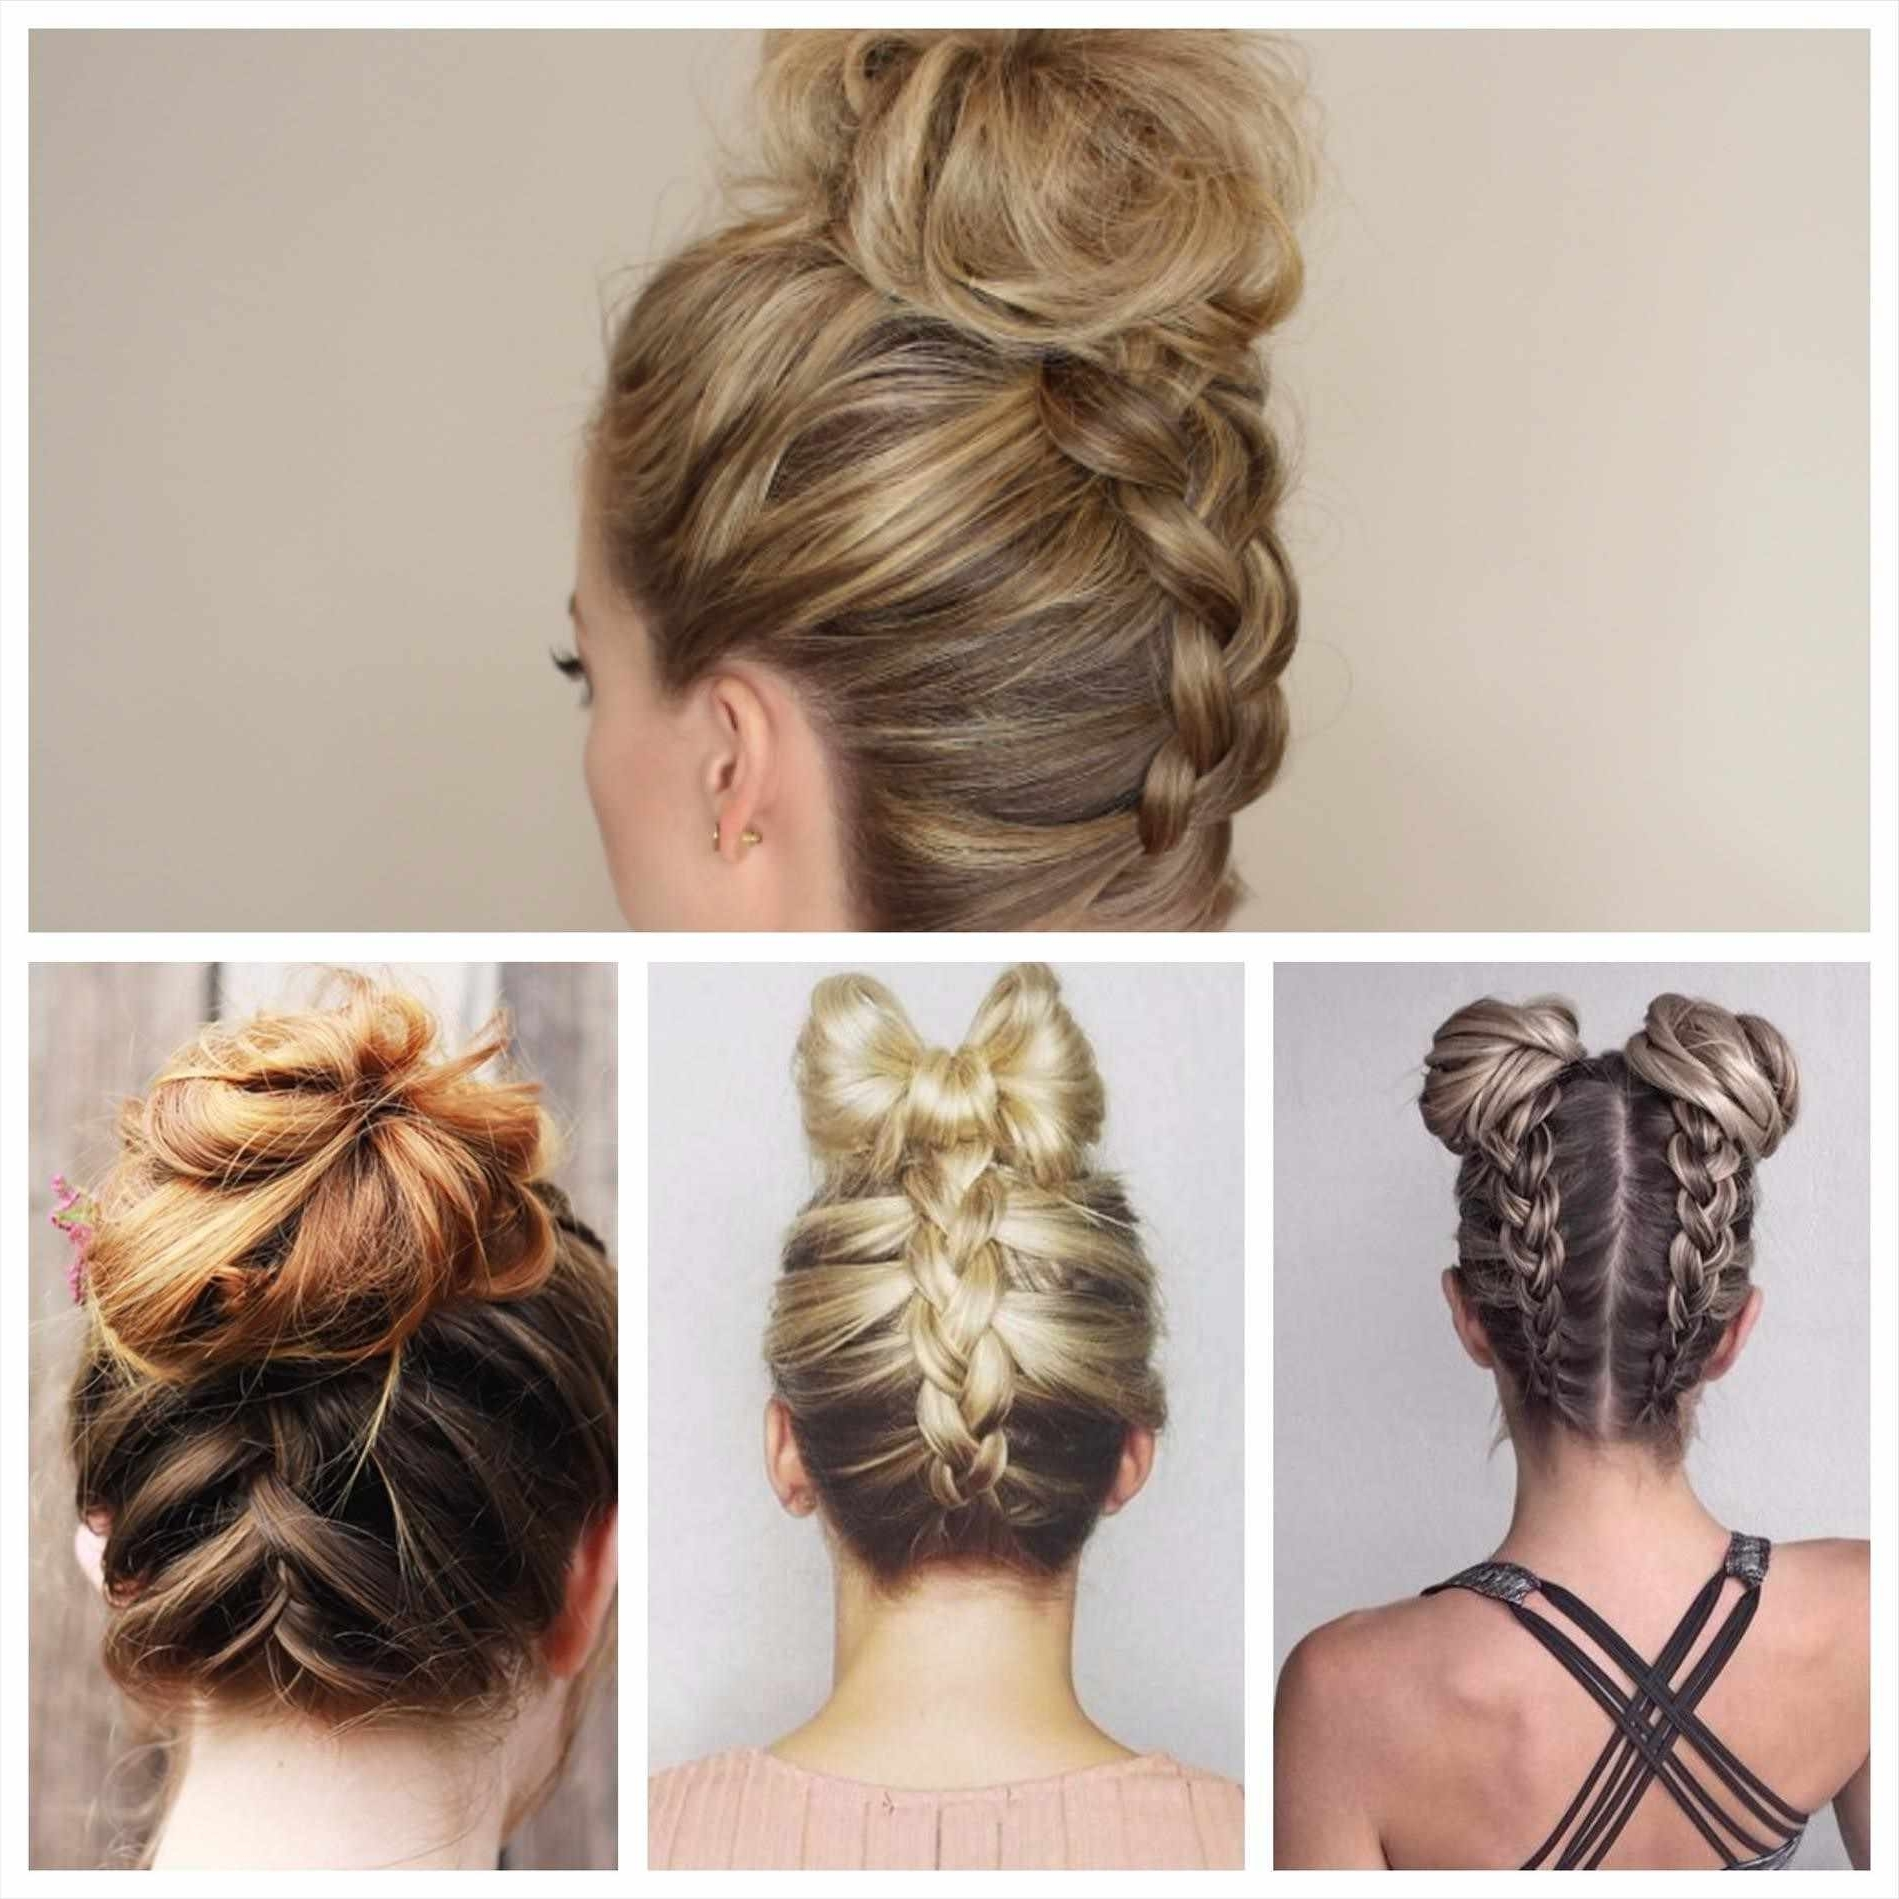 Most Popular Braid Hairstyles To Messy Bun Intended For Best Ideas Of Messy Bun Braid Hairstyles Awesome Tuxedo Braid Messy (View 15 of 15)